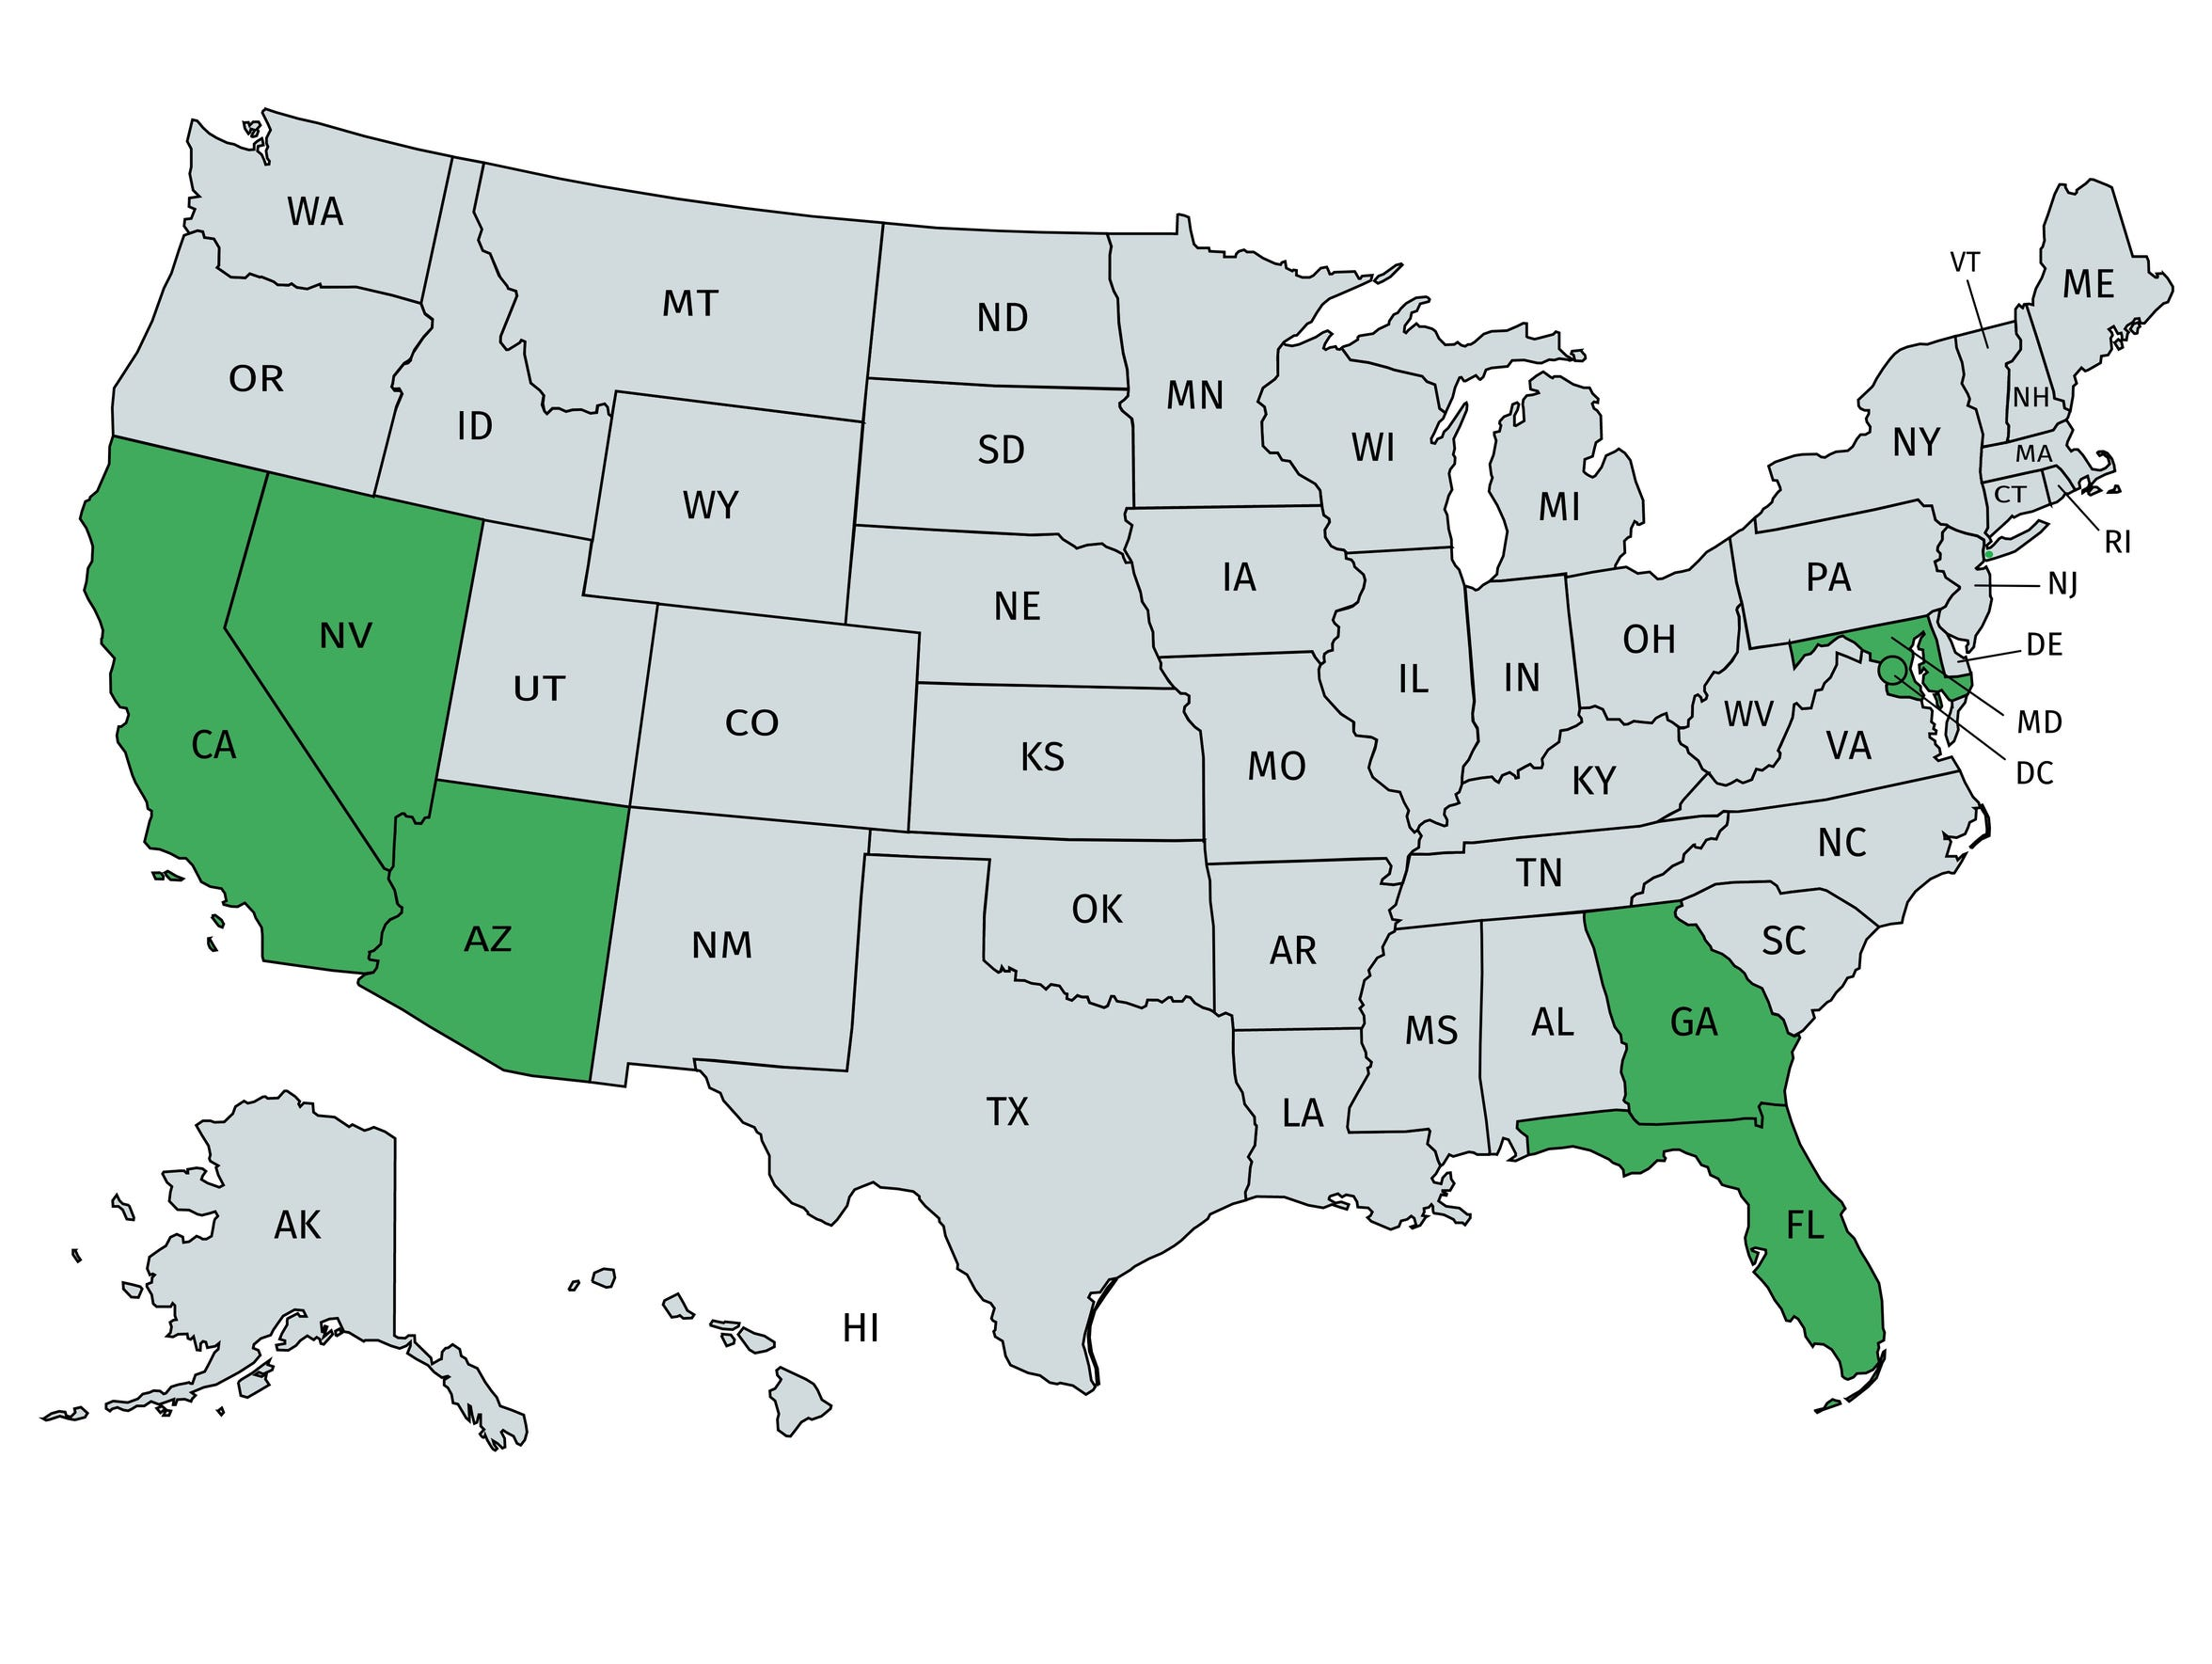 The states in green (California, Nevada, Arizona, Florida,